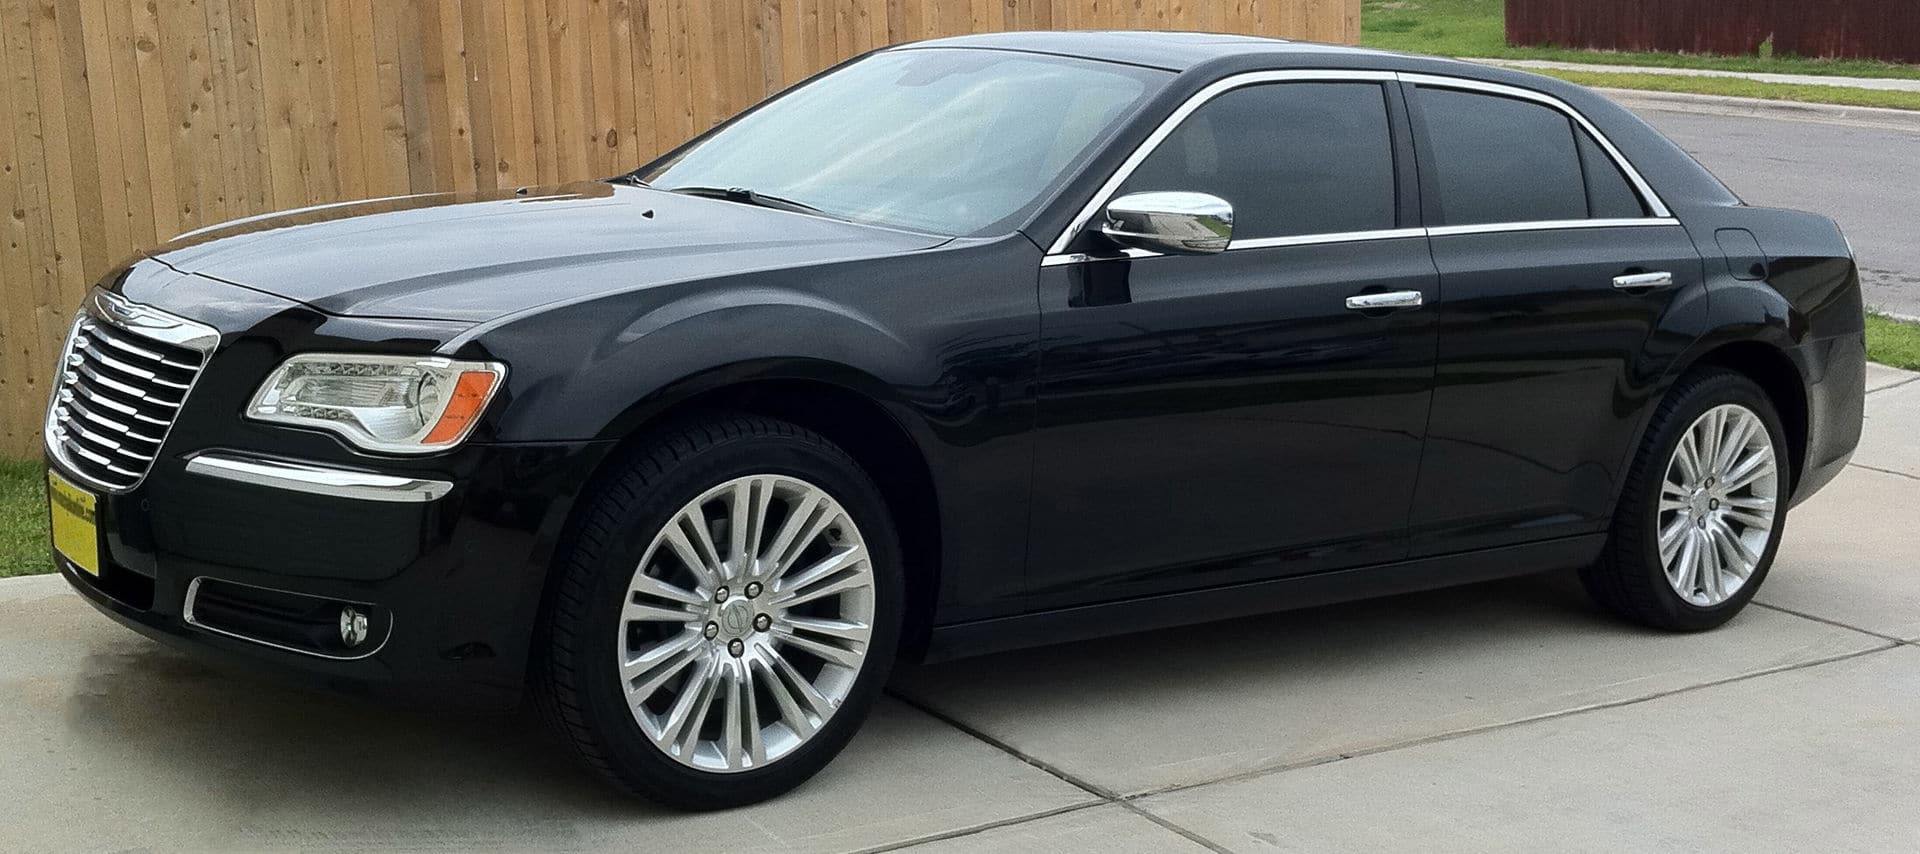 Chrysler 300 Auto Glass Repair and Replacement